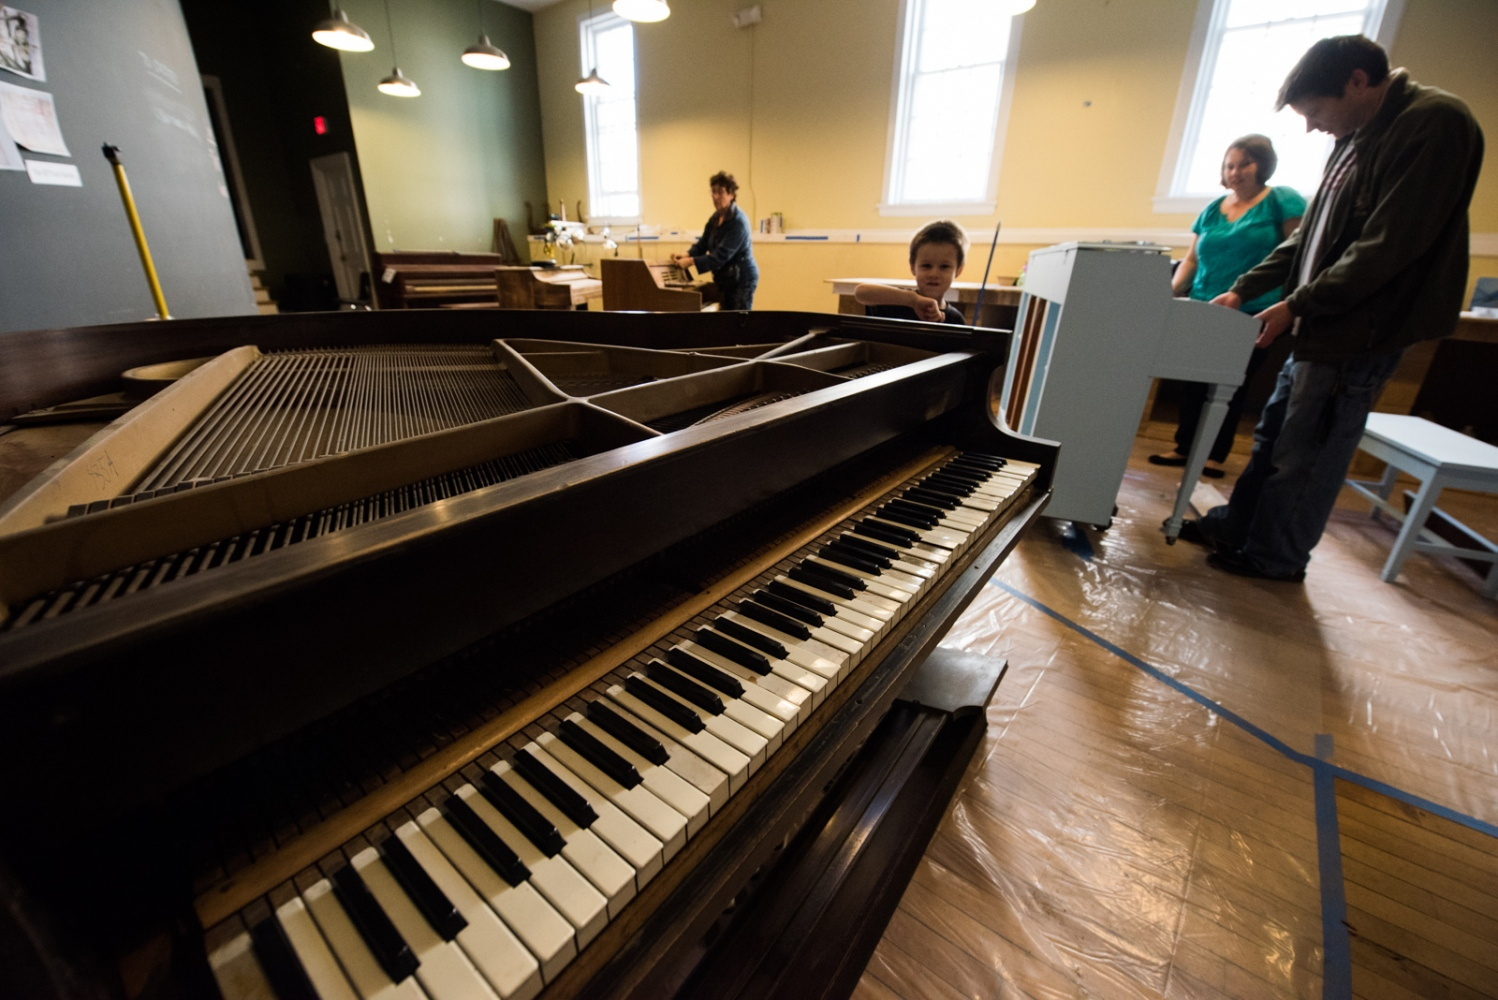 All the work is completed at Piano Central which is a space donated by a local business for the duration of the project. The pianos are washed to remove dirt, dust and years of accumulated grime, then sanded.